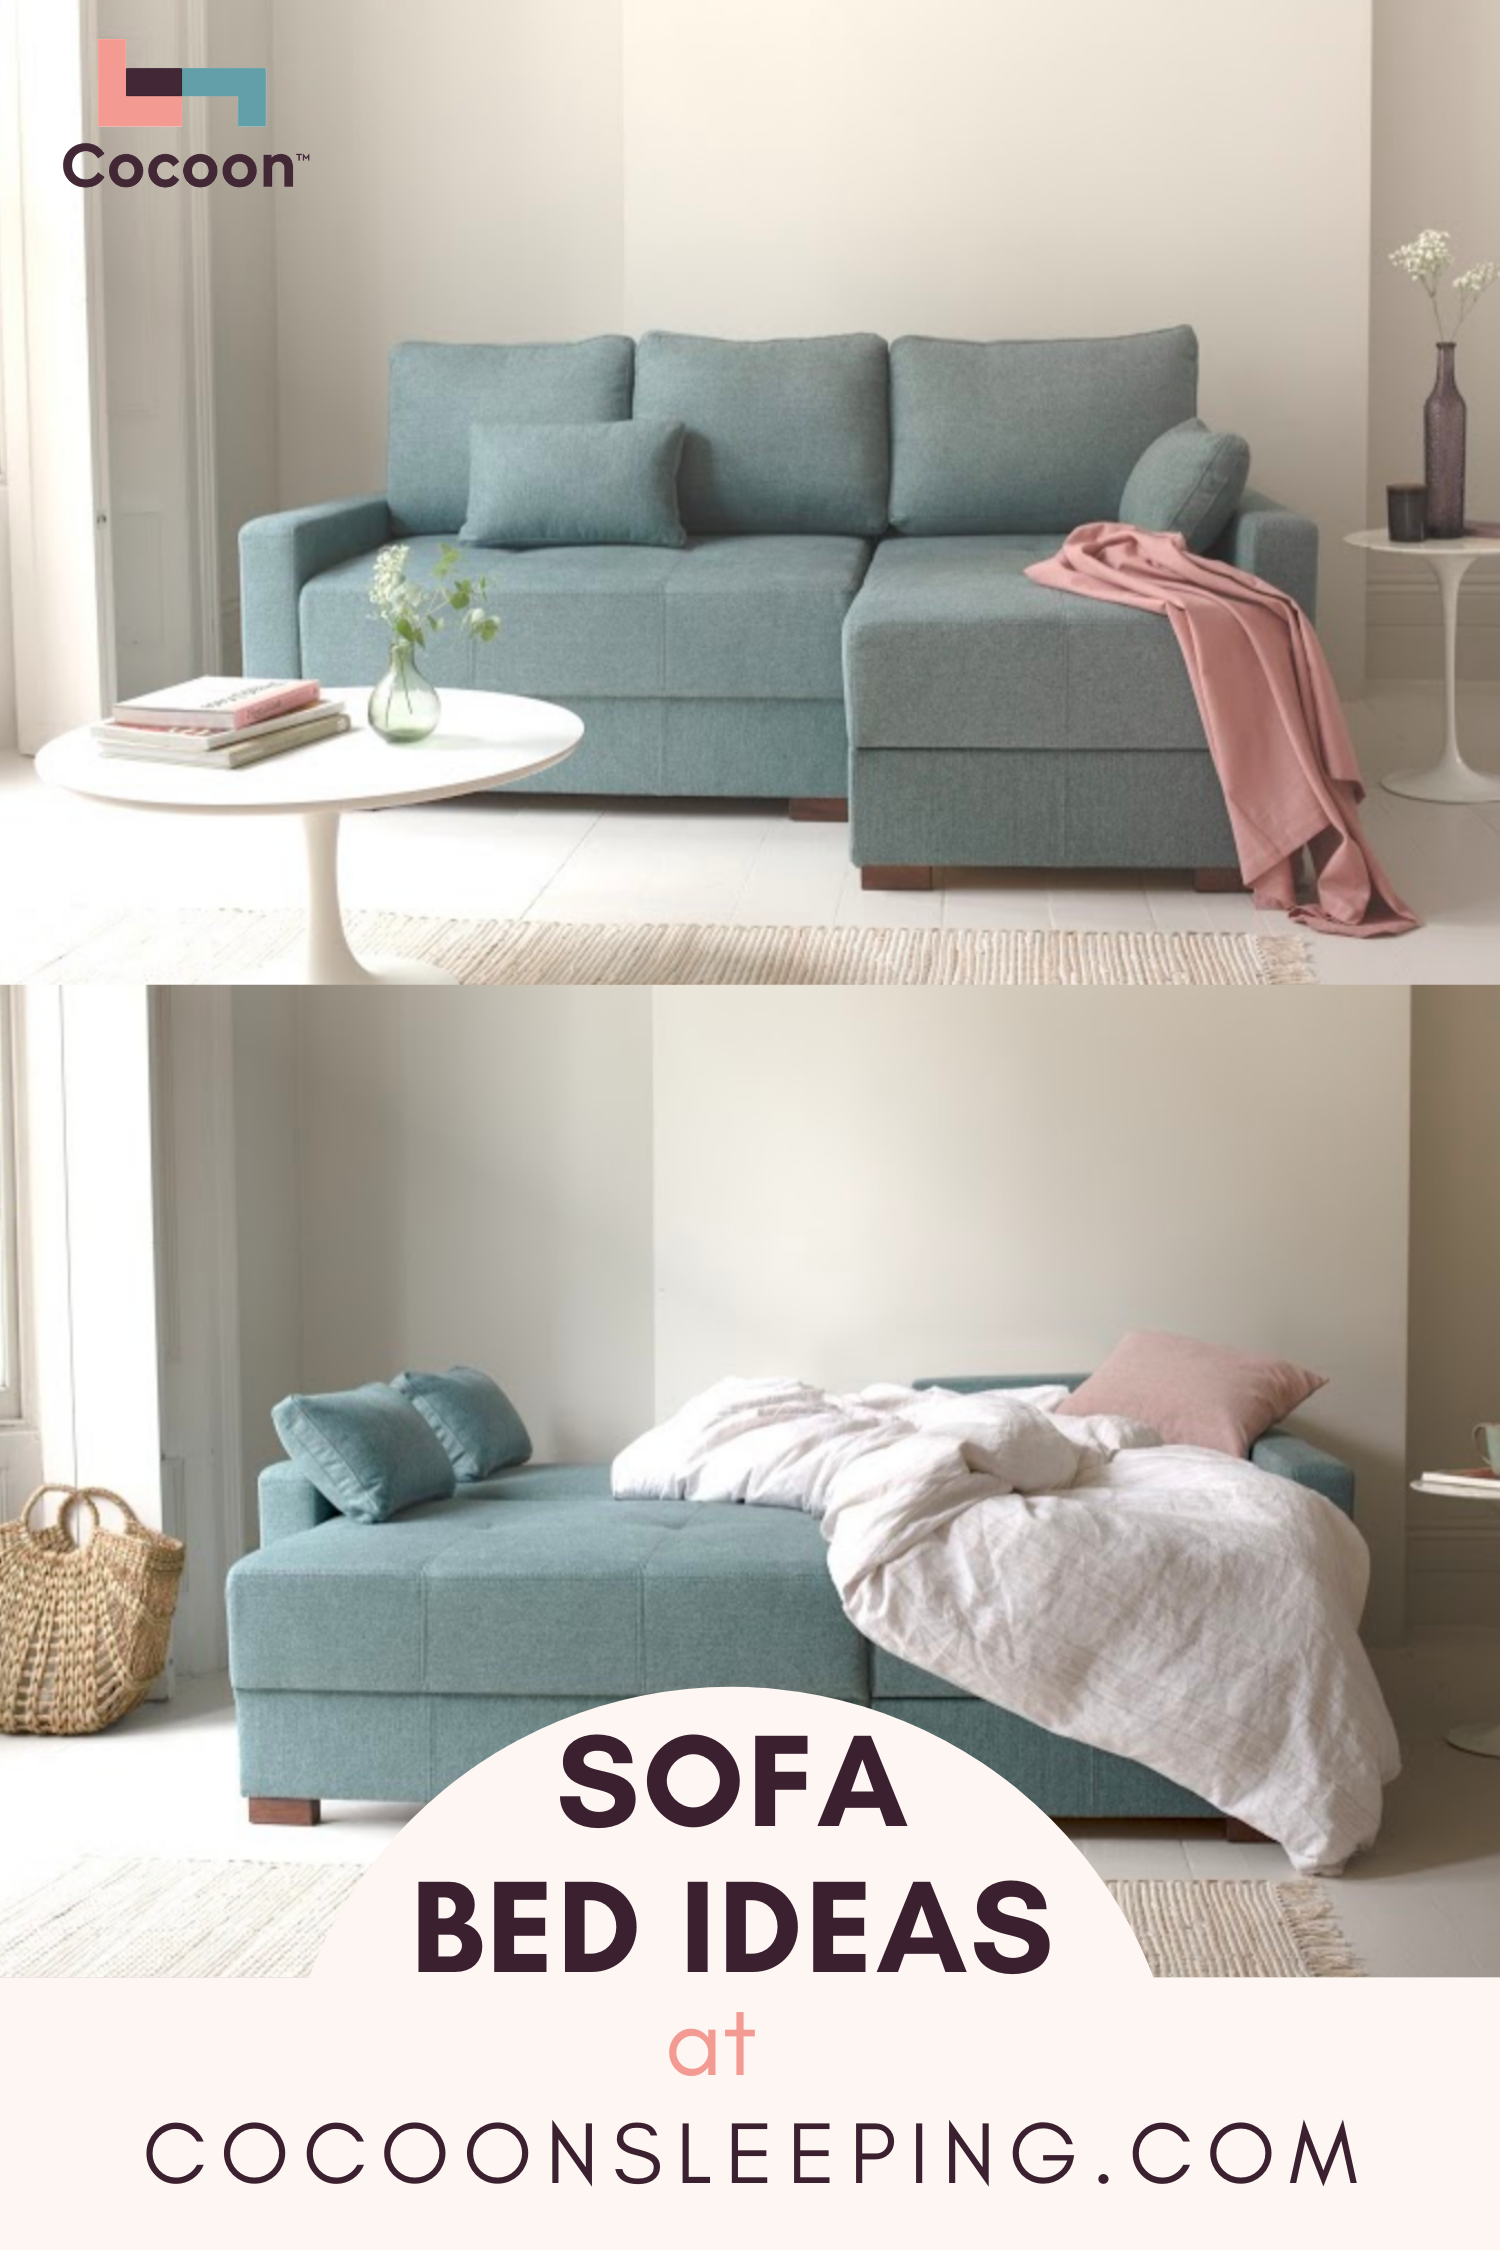 Diy Sofa Bed Best Ottoman Sofa Bed Ideas On Small Beds Pallet Properly Throughout Sleeper S Moveis Para Espacos Pequenos Sofa Sala De Estar Ideias Para Mobilia